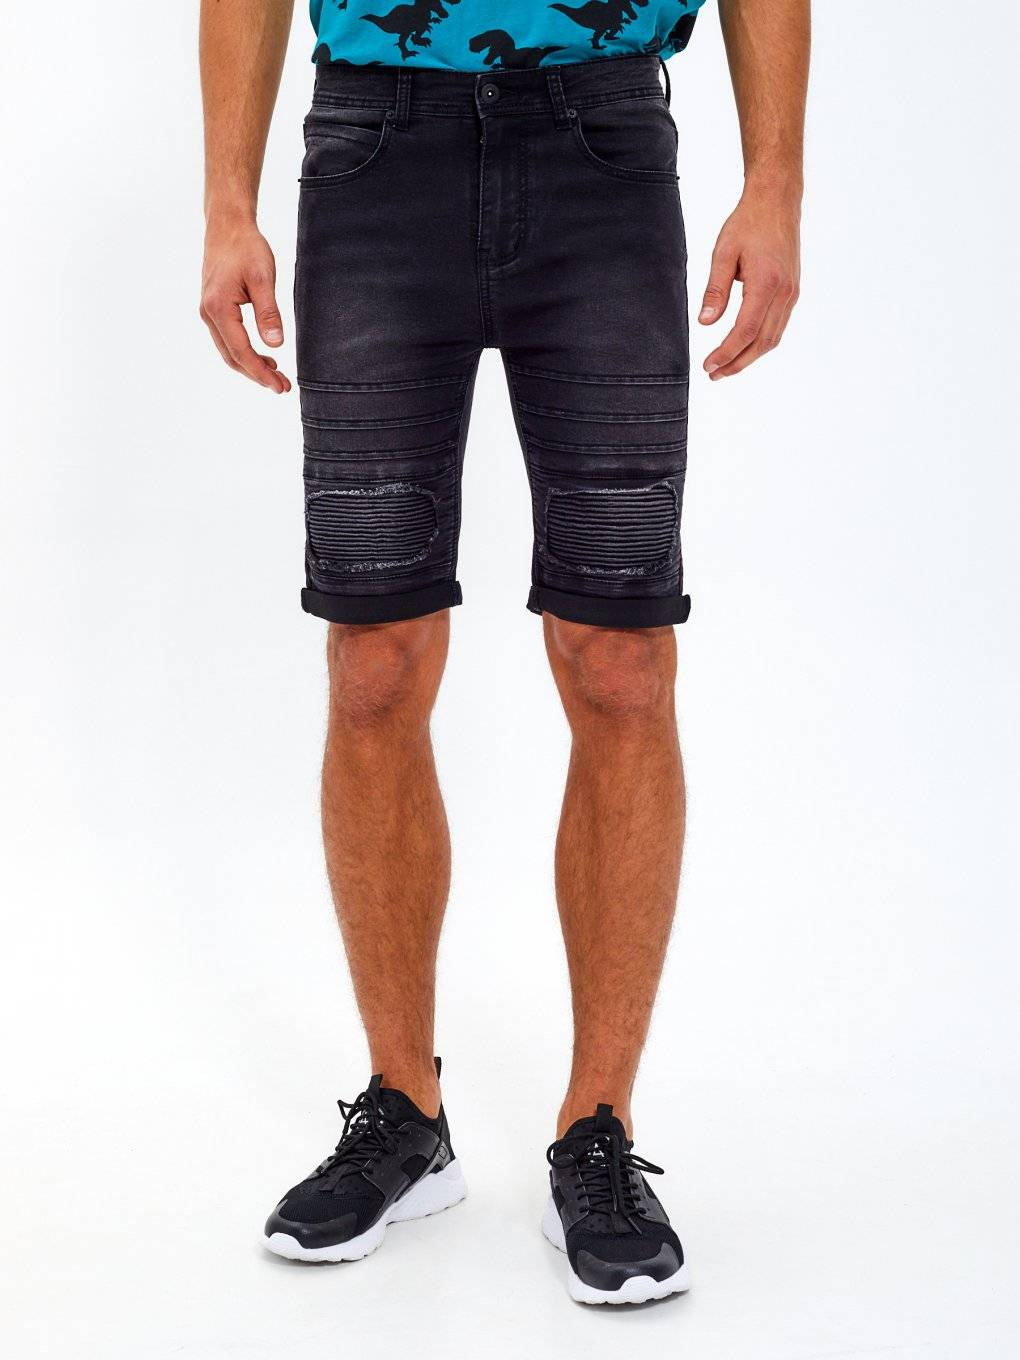 Biker denim shorts